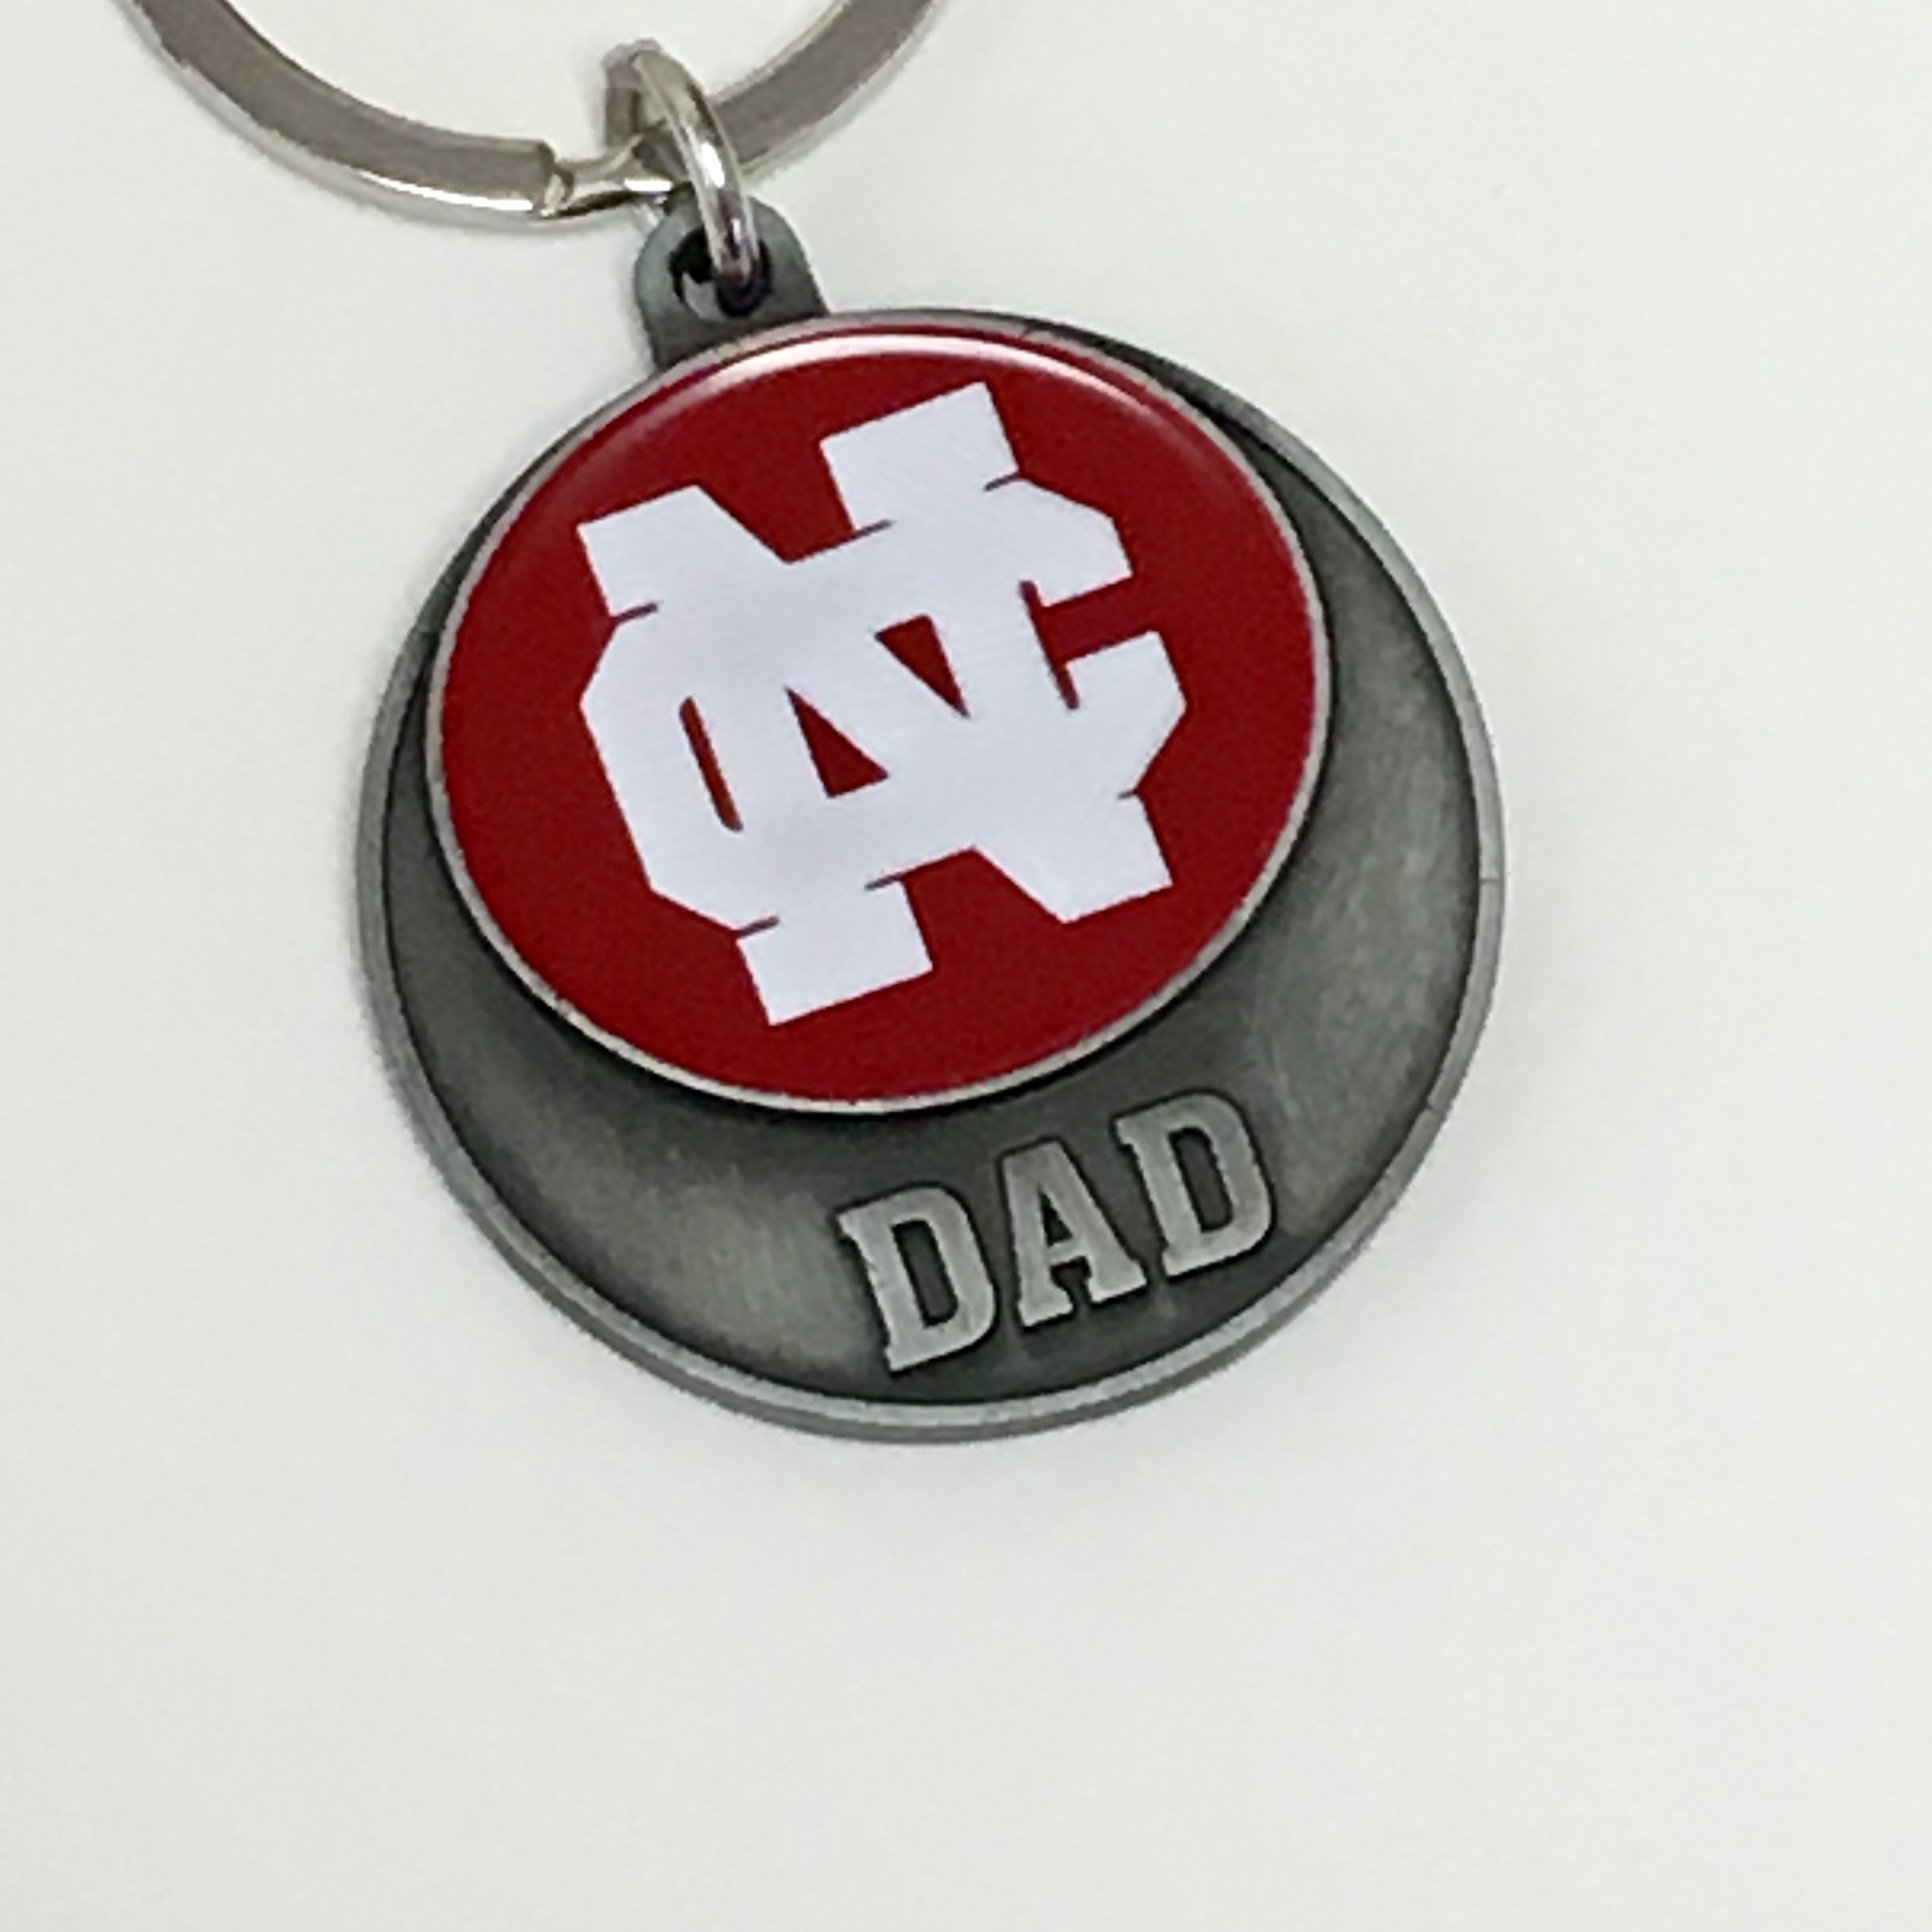 Image for the DAD (Keychain) product